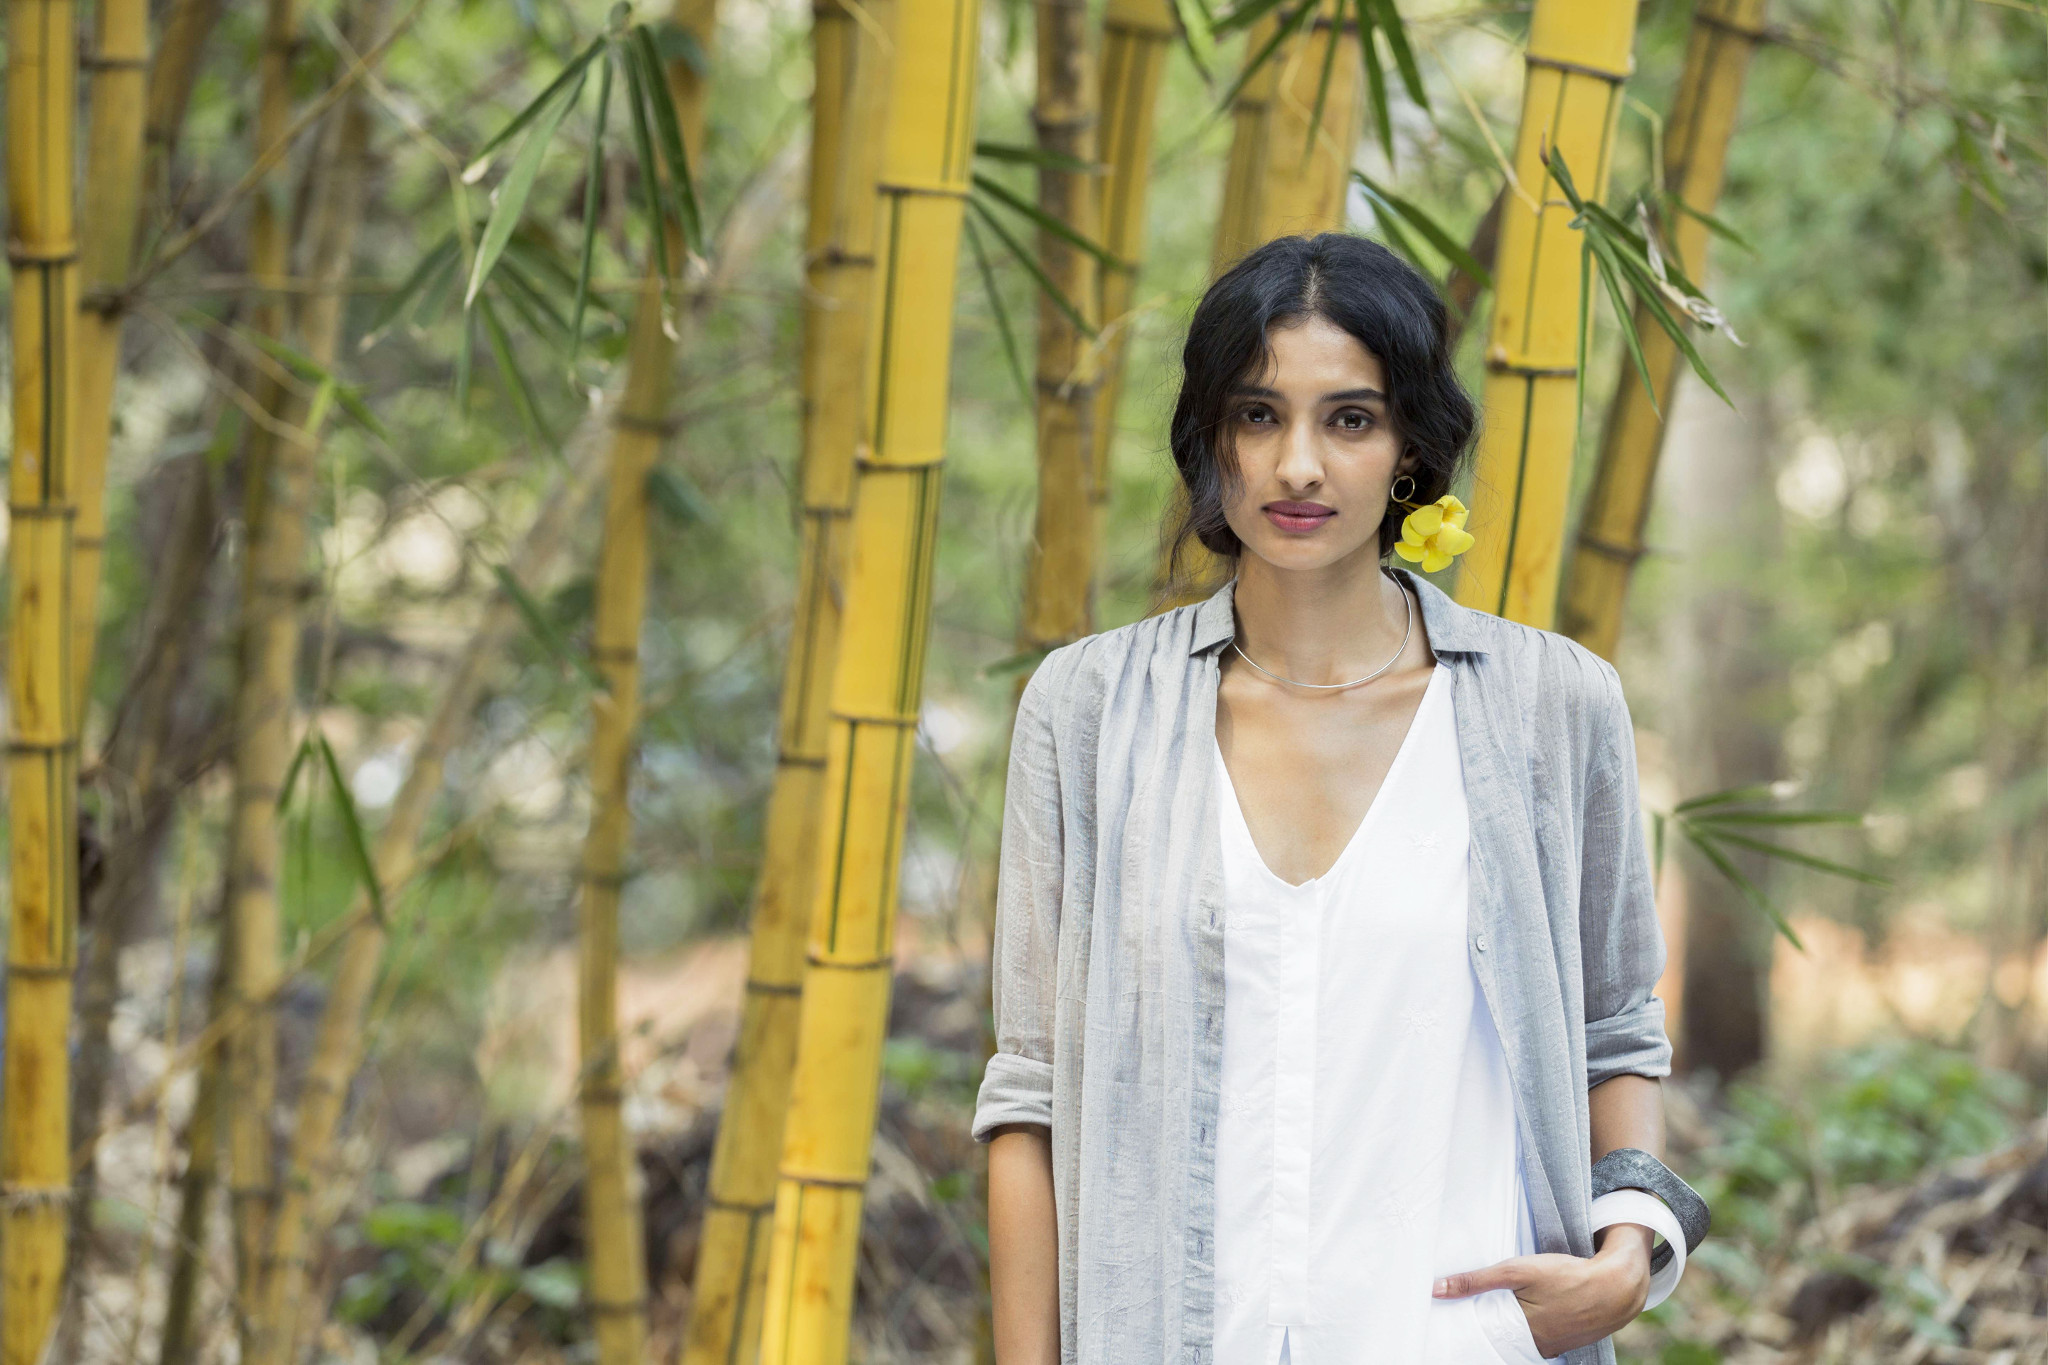 International Model Dayana Erappa is setting her foot in Indian Cinema